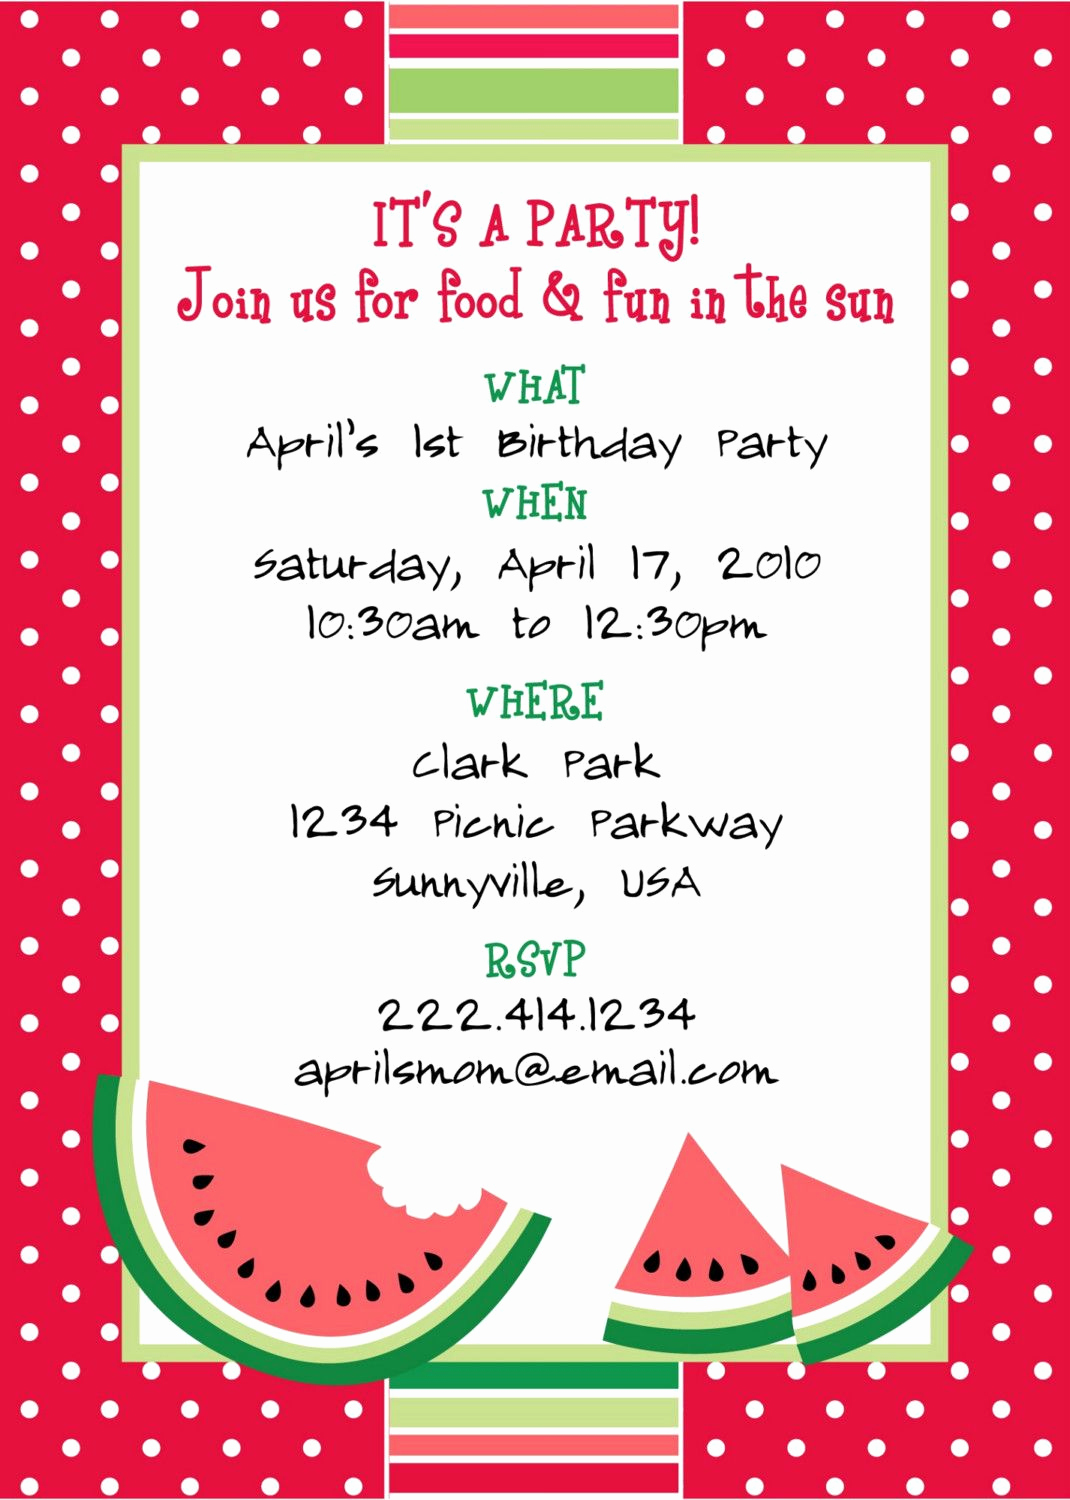 Picnic Invitation Templates Free Elegant Picnic Invitations Pdf Invitation Templates